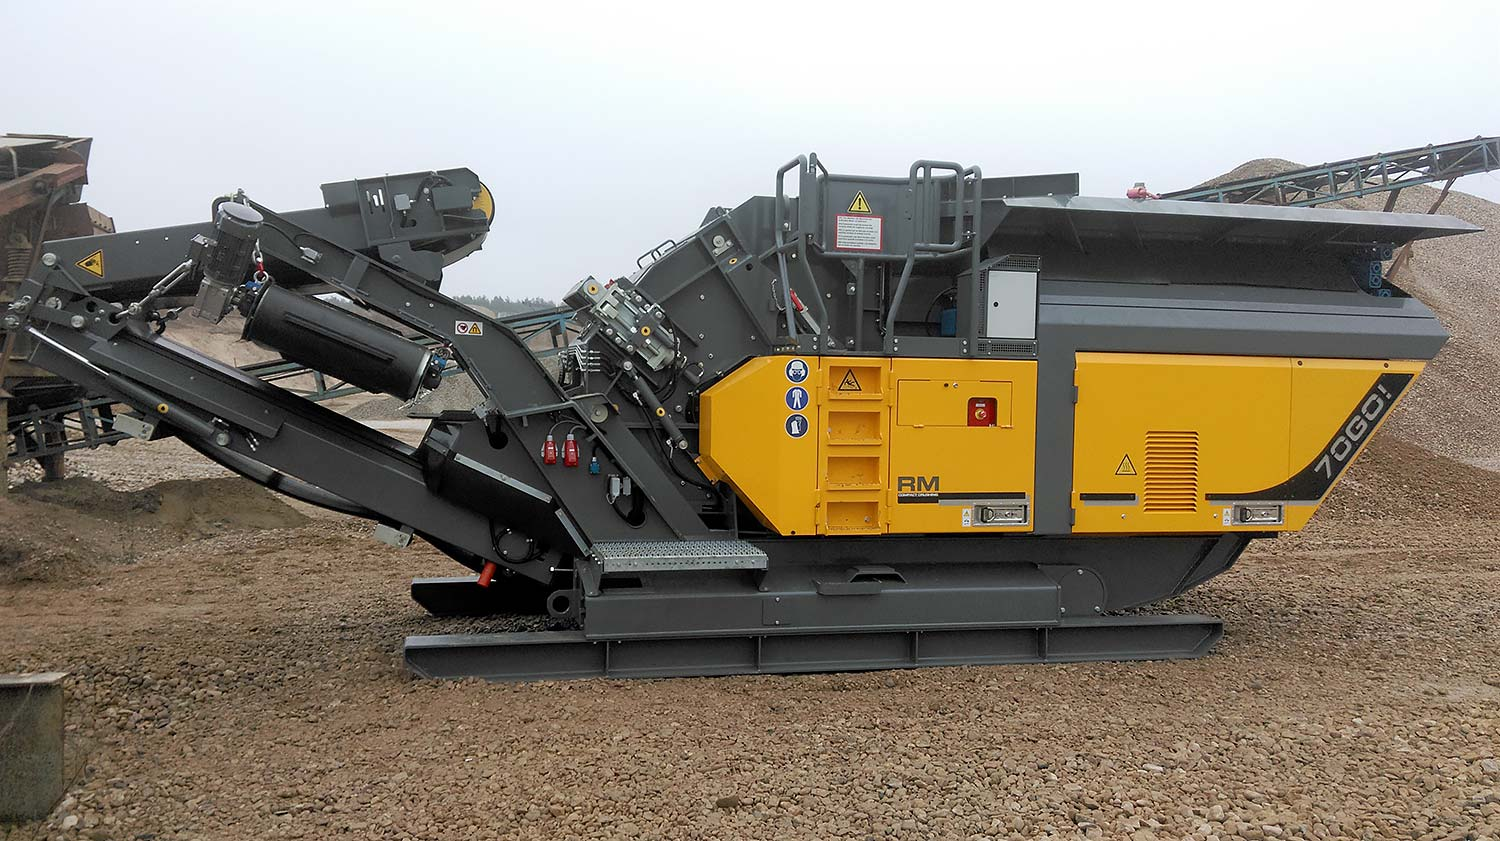 MHM new RM Rubble Master electric drive- RM70GO compact crusher